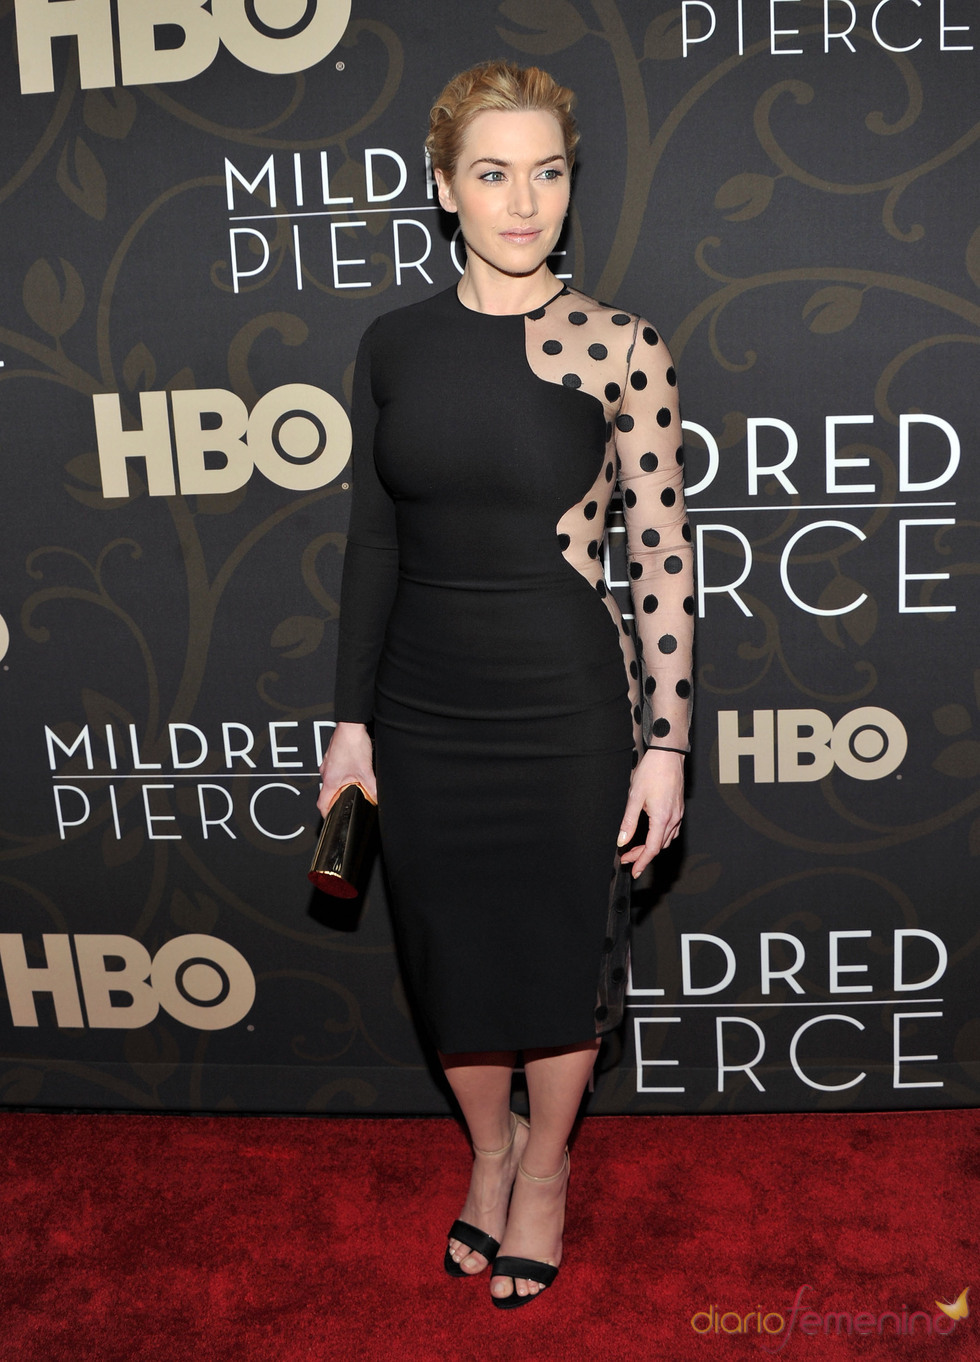 kate Winslet en el estreno de 'Mildred Pierce'